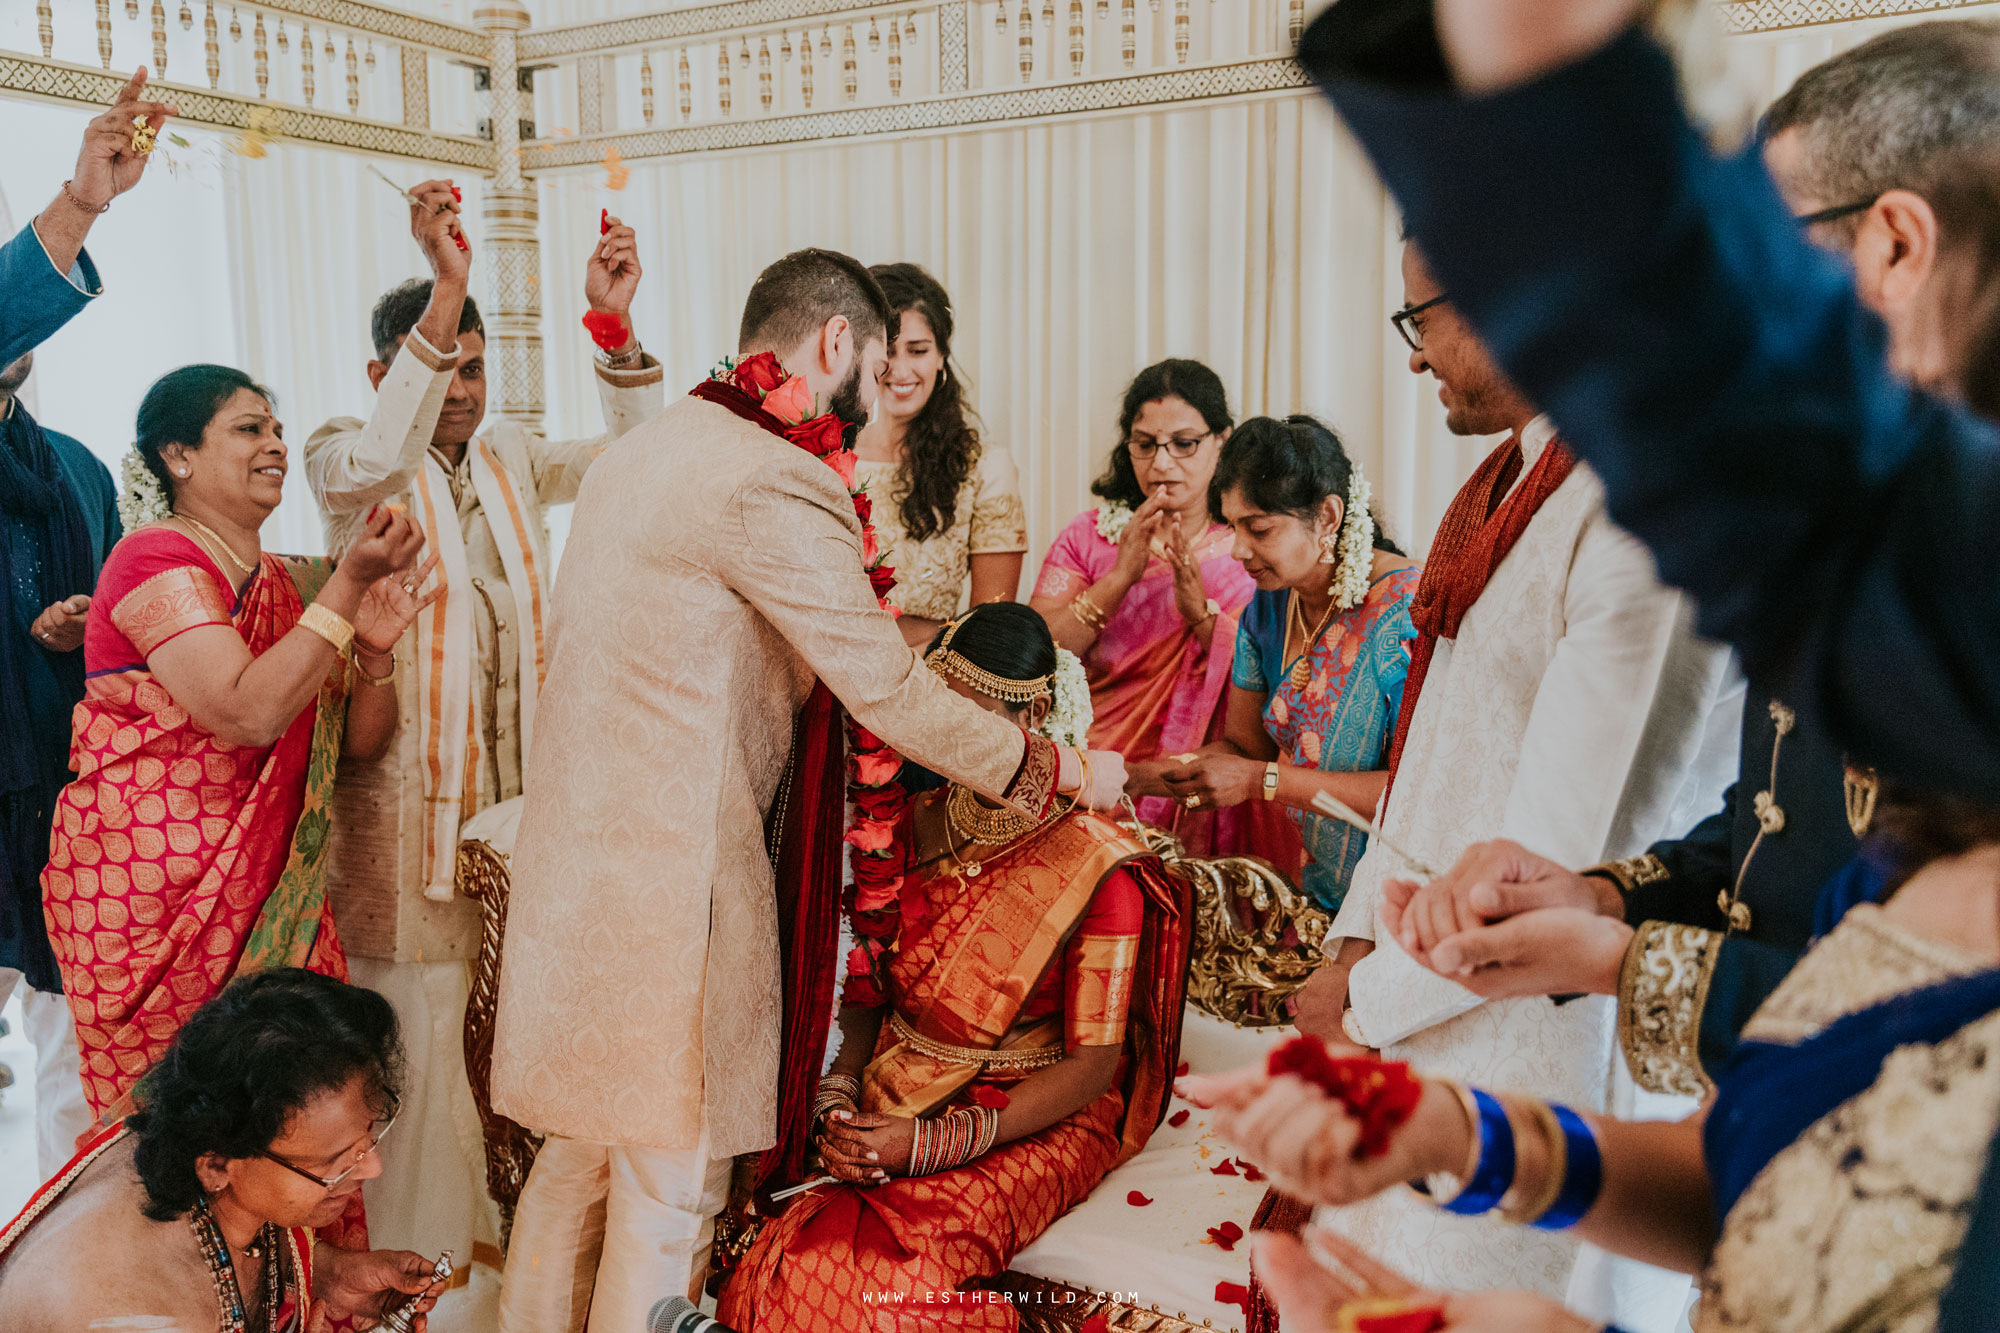 Northbrook_Park_Farnham_Surrey_London_Wedding_Hindu_Fusion_Esther_Wild_Photographer_IMG_4501.jpg